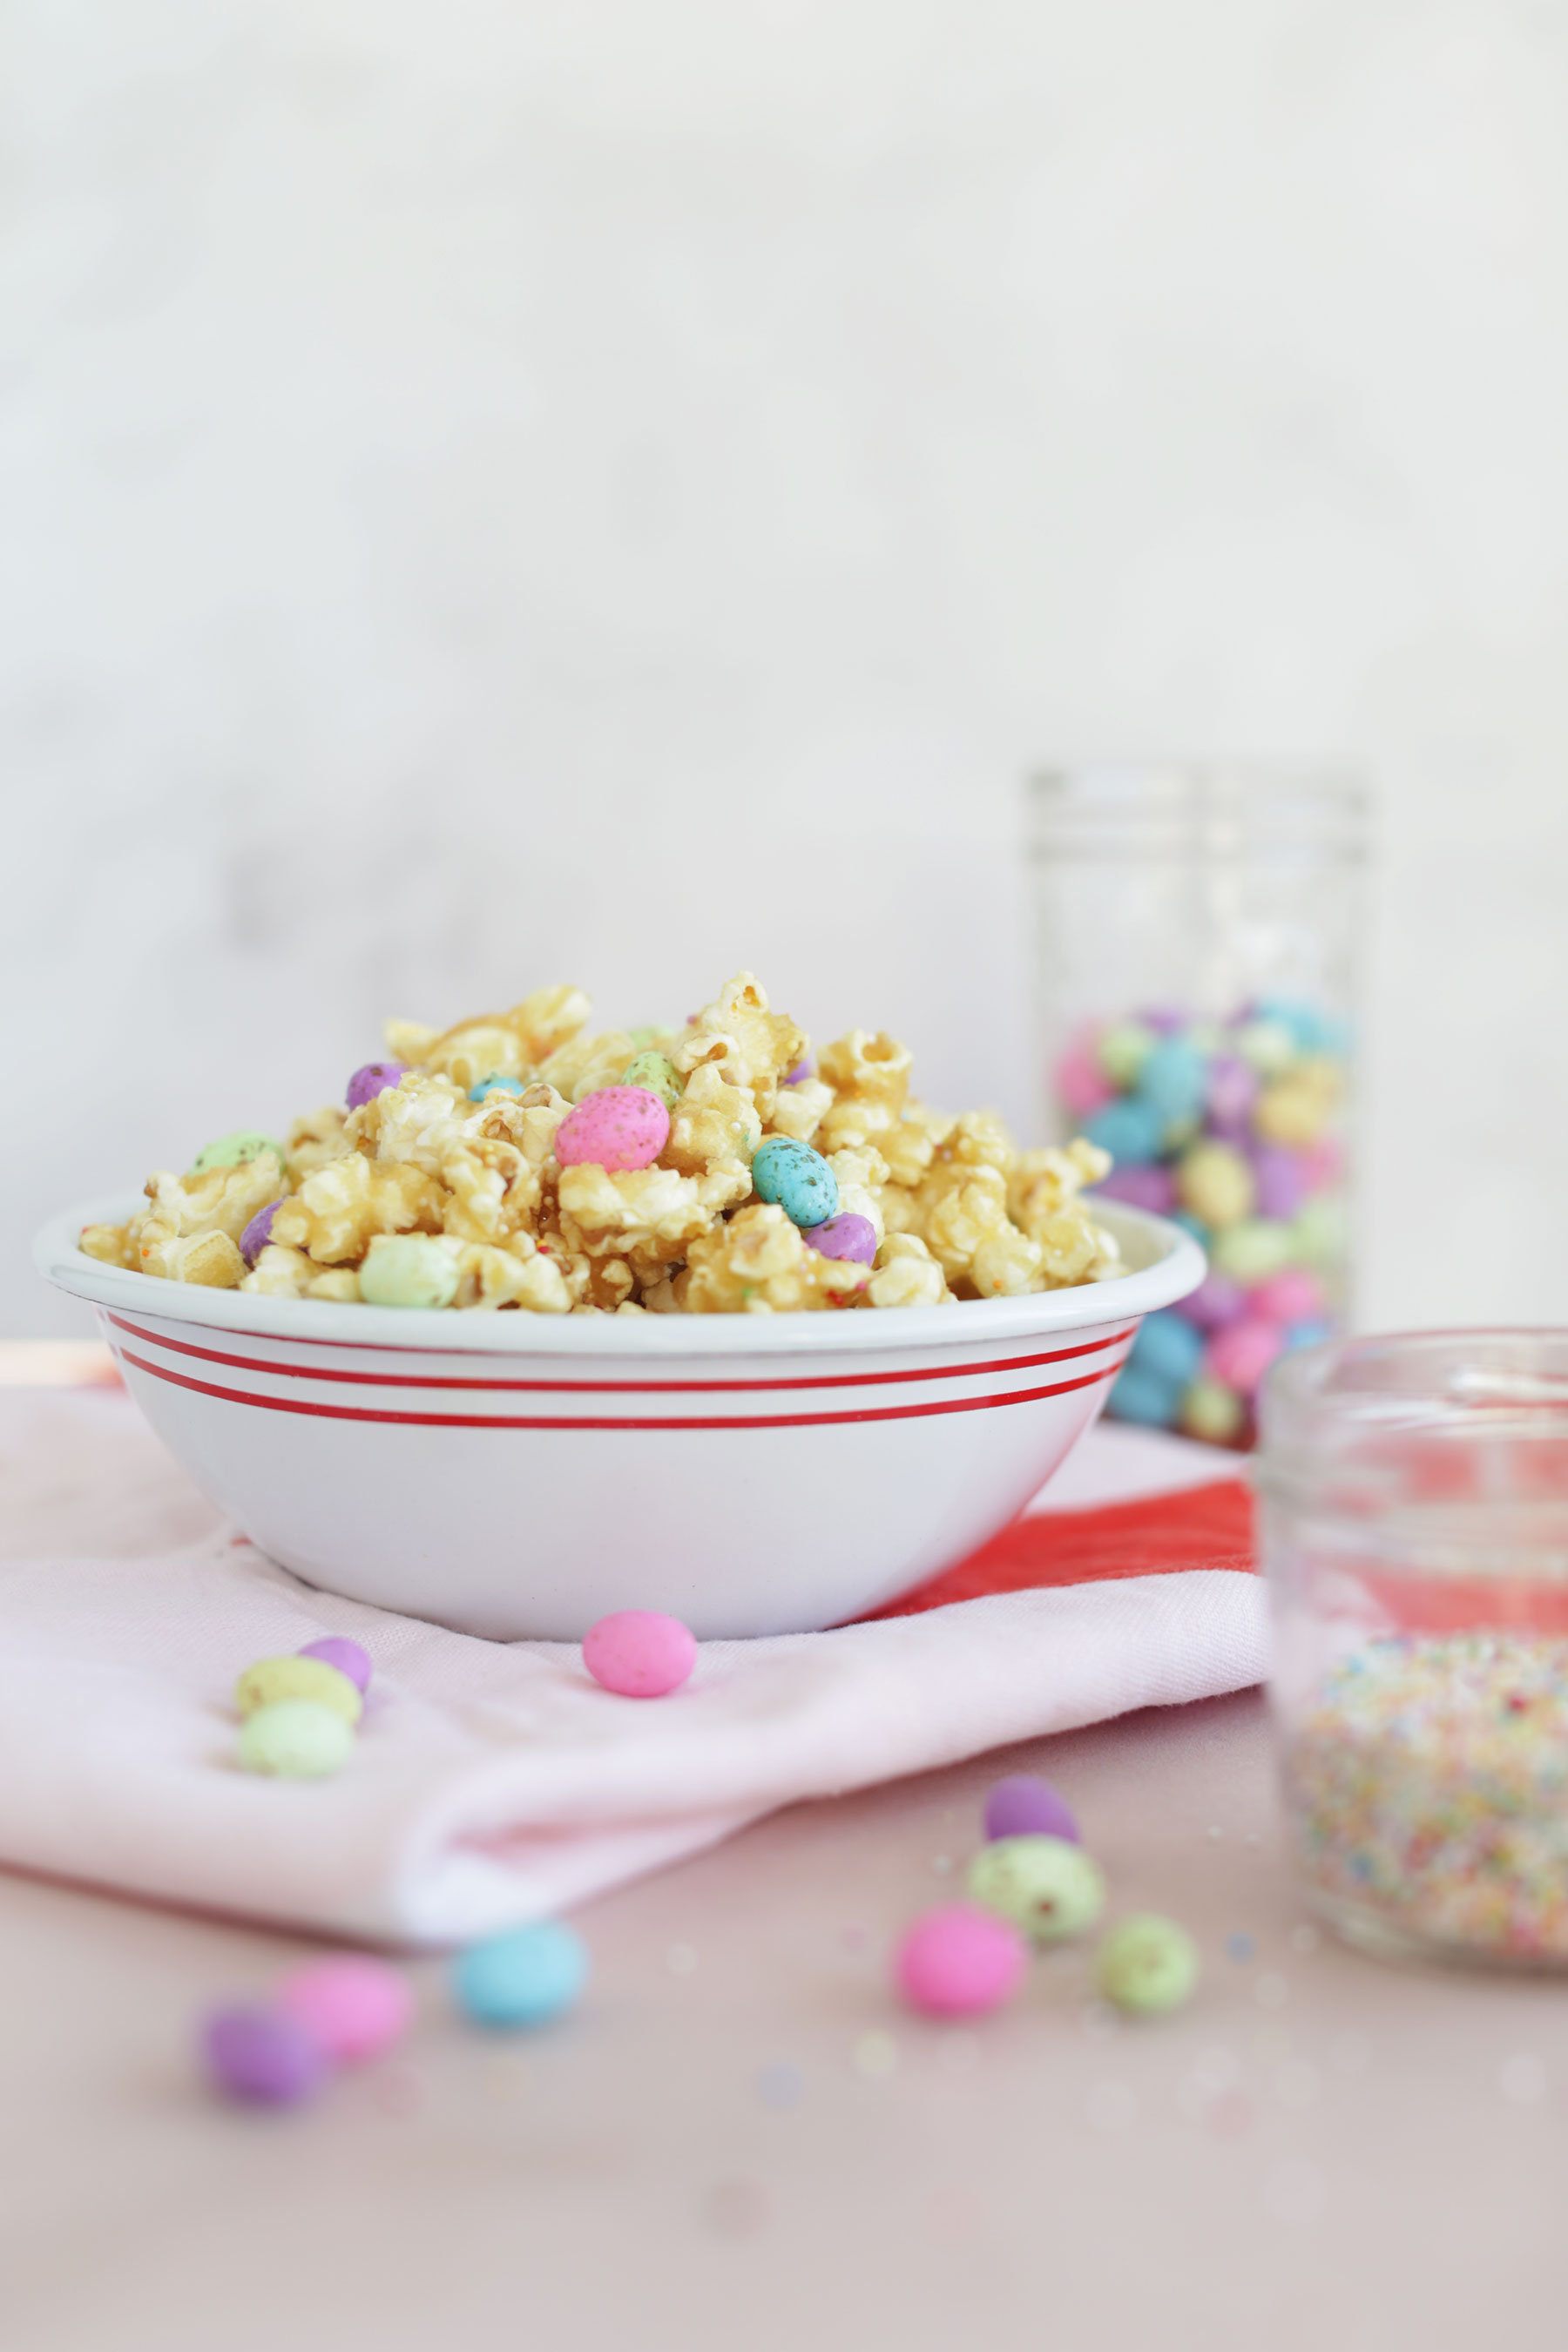 Caramel-Popcorn-with-speckled-eggs-and-sprinkles